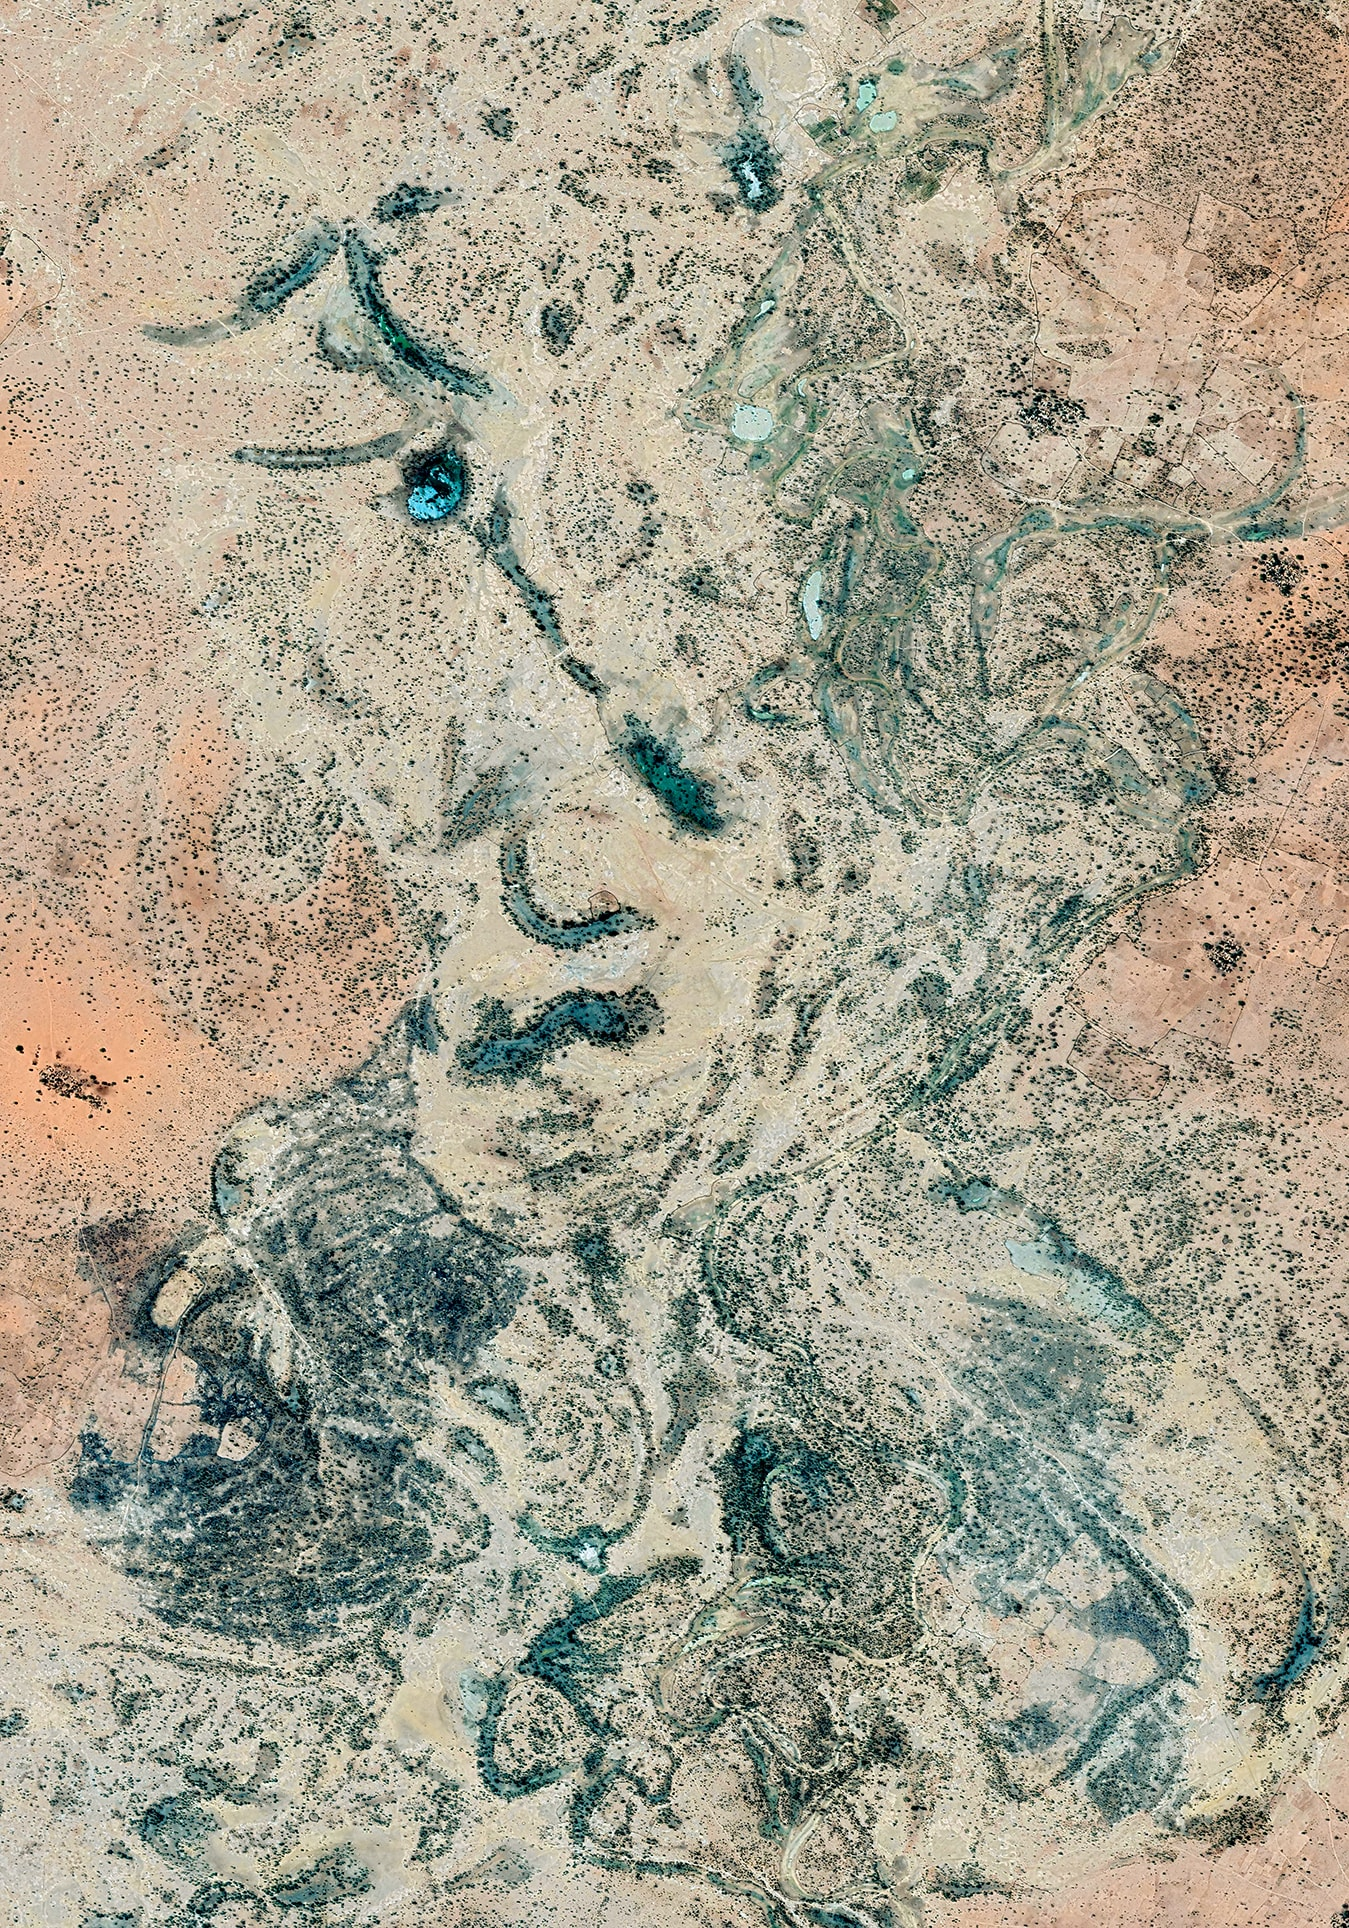 Earth Portrait 34 Nigeria, 2018, cm 100×70, 1/9